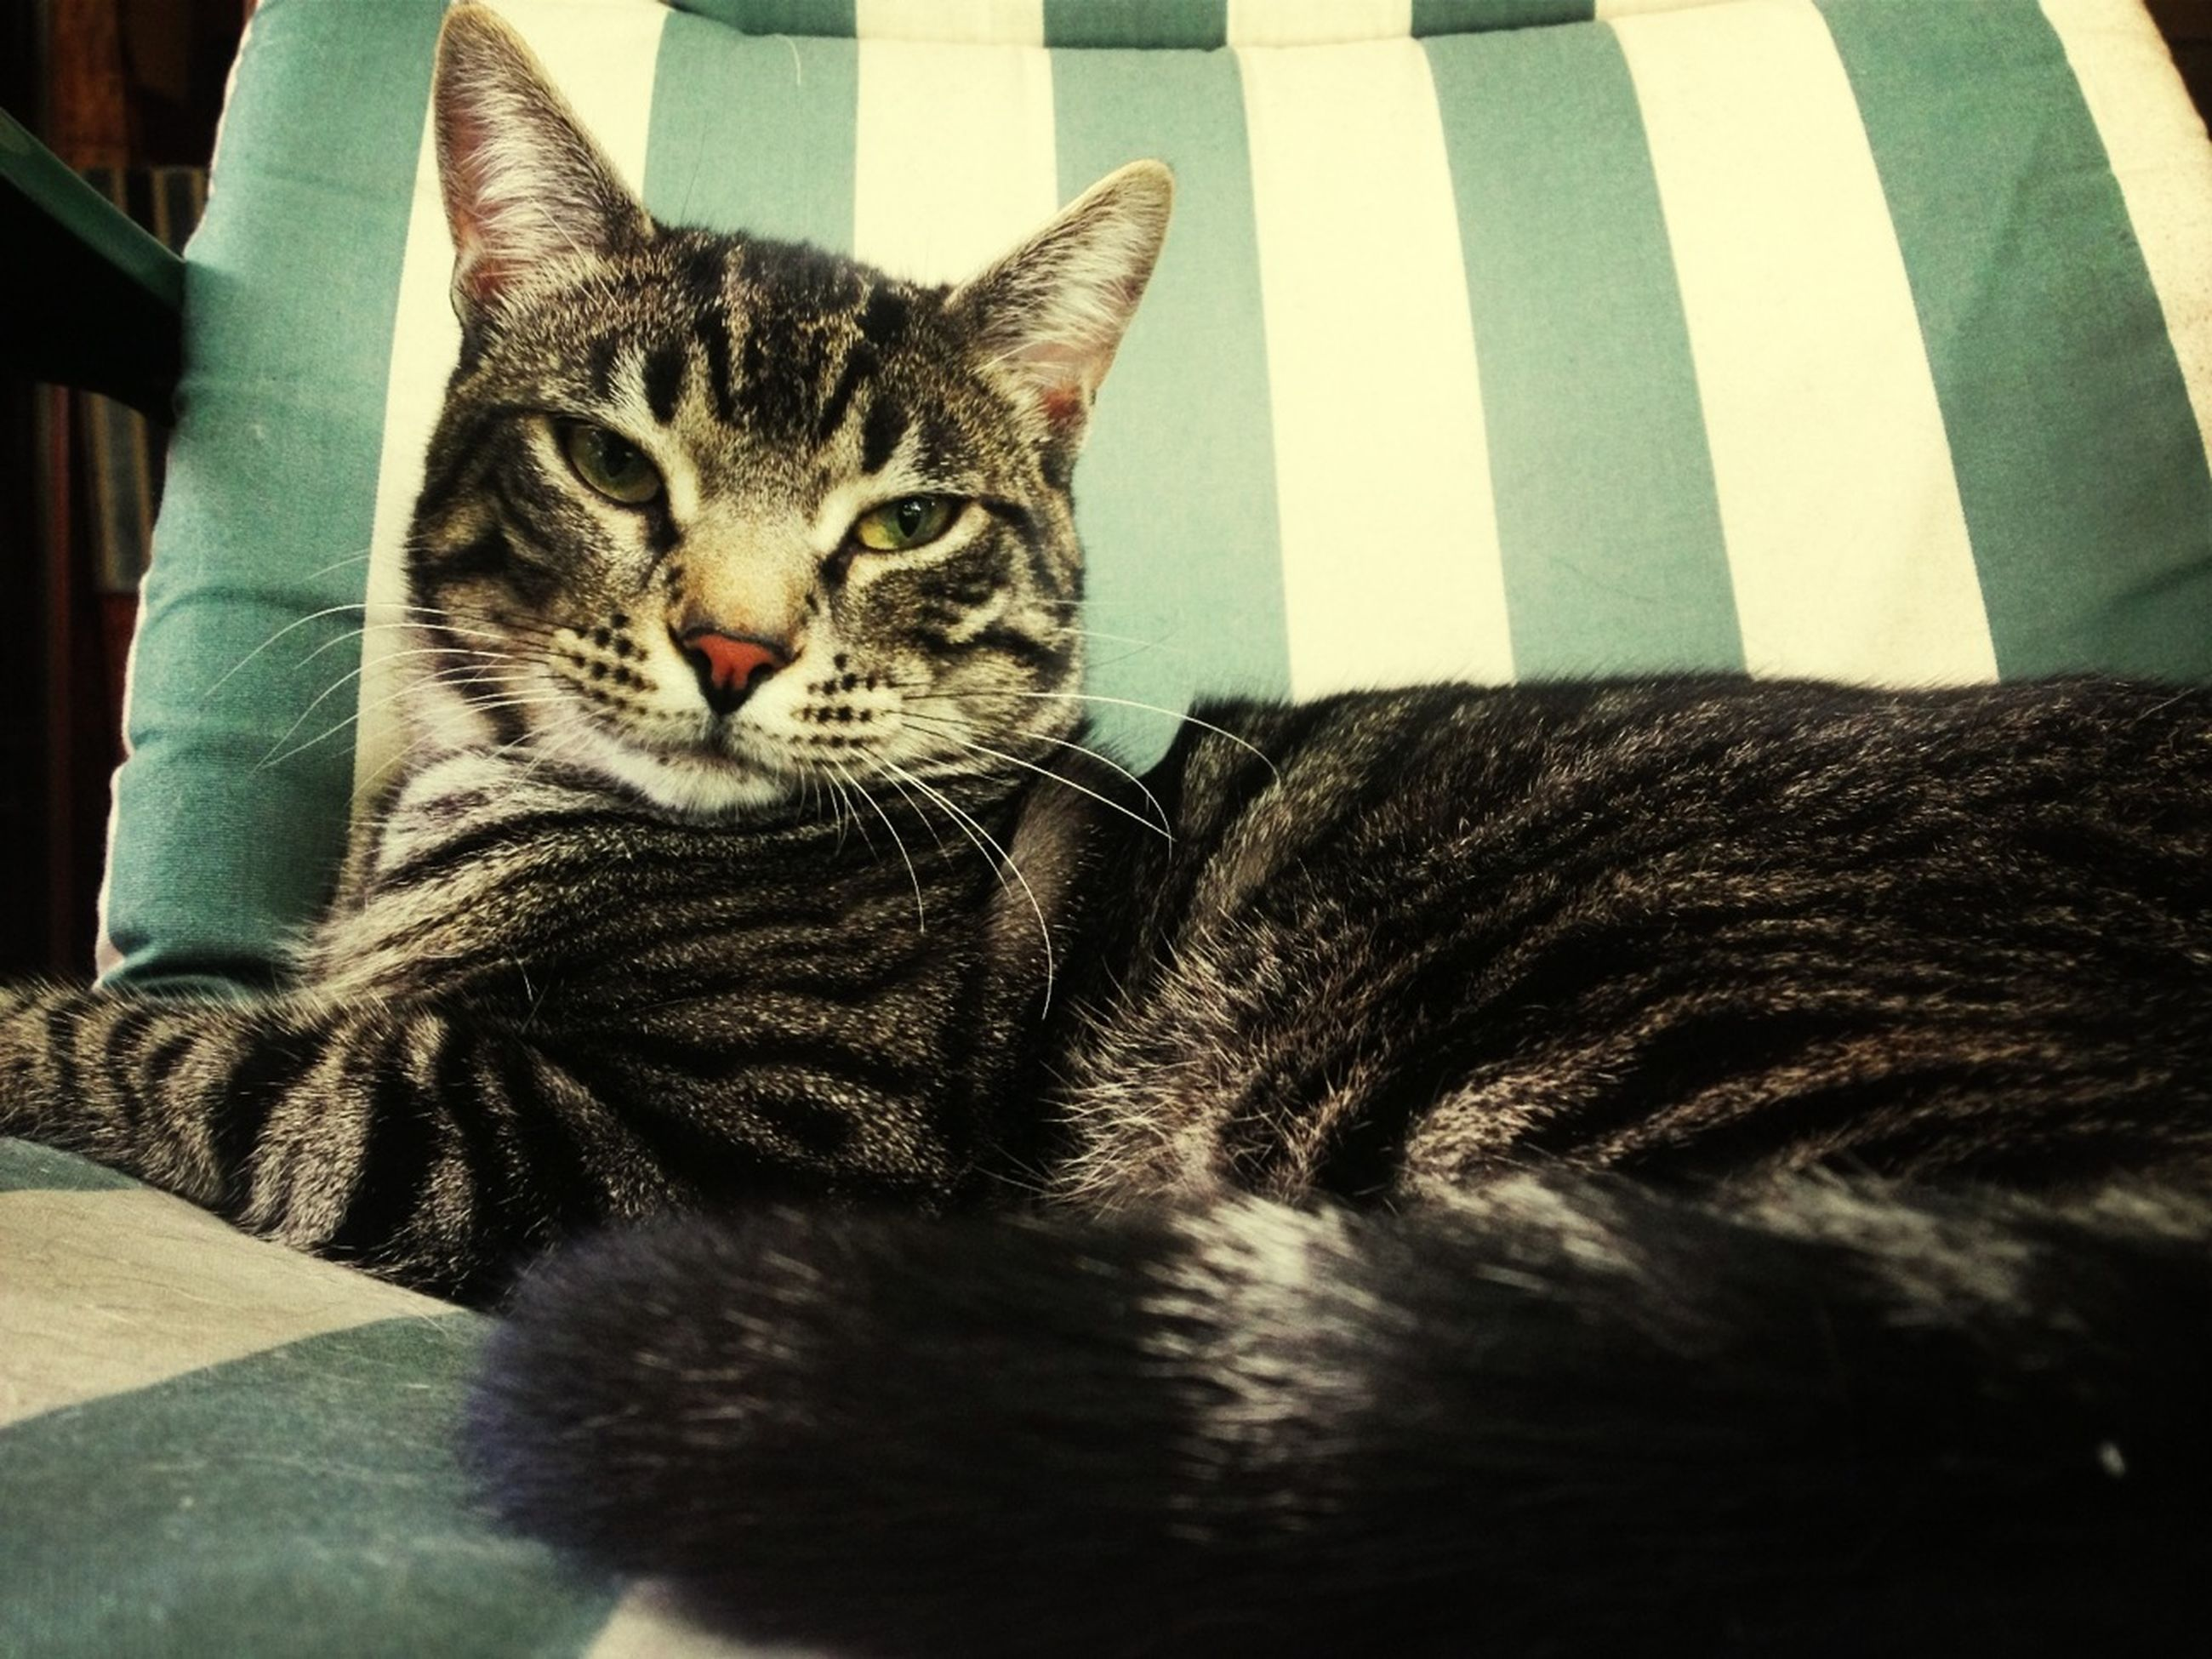 domestic cat, cat, pets, feline, domestic animals, mammal, one animal, animal themes, indoors, whisker, relaxation, resting, portrait, lying down, looking at camera, home interior, close-up, tabby, staring, no people